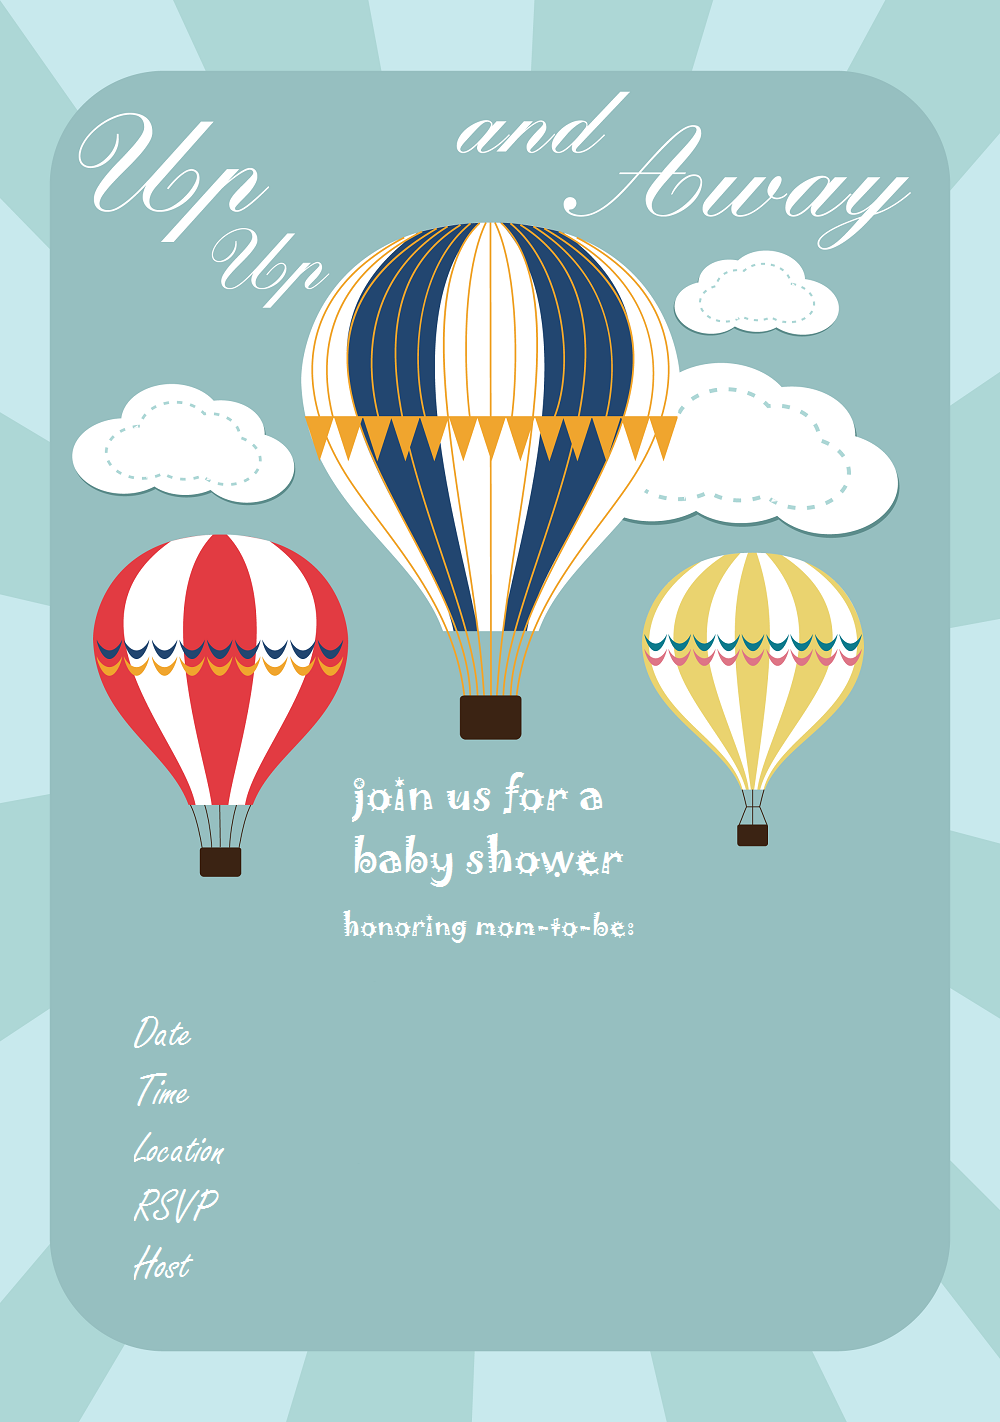 Free-baby-shower-Invitation-hot-air-balloon-up-up-and-away